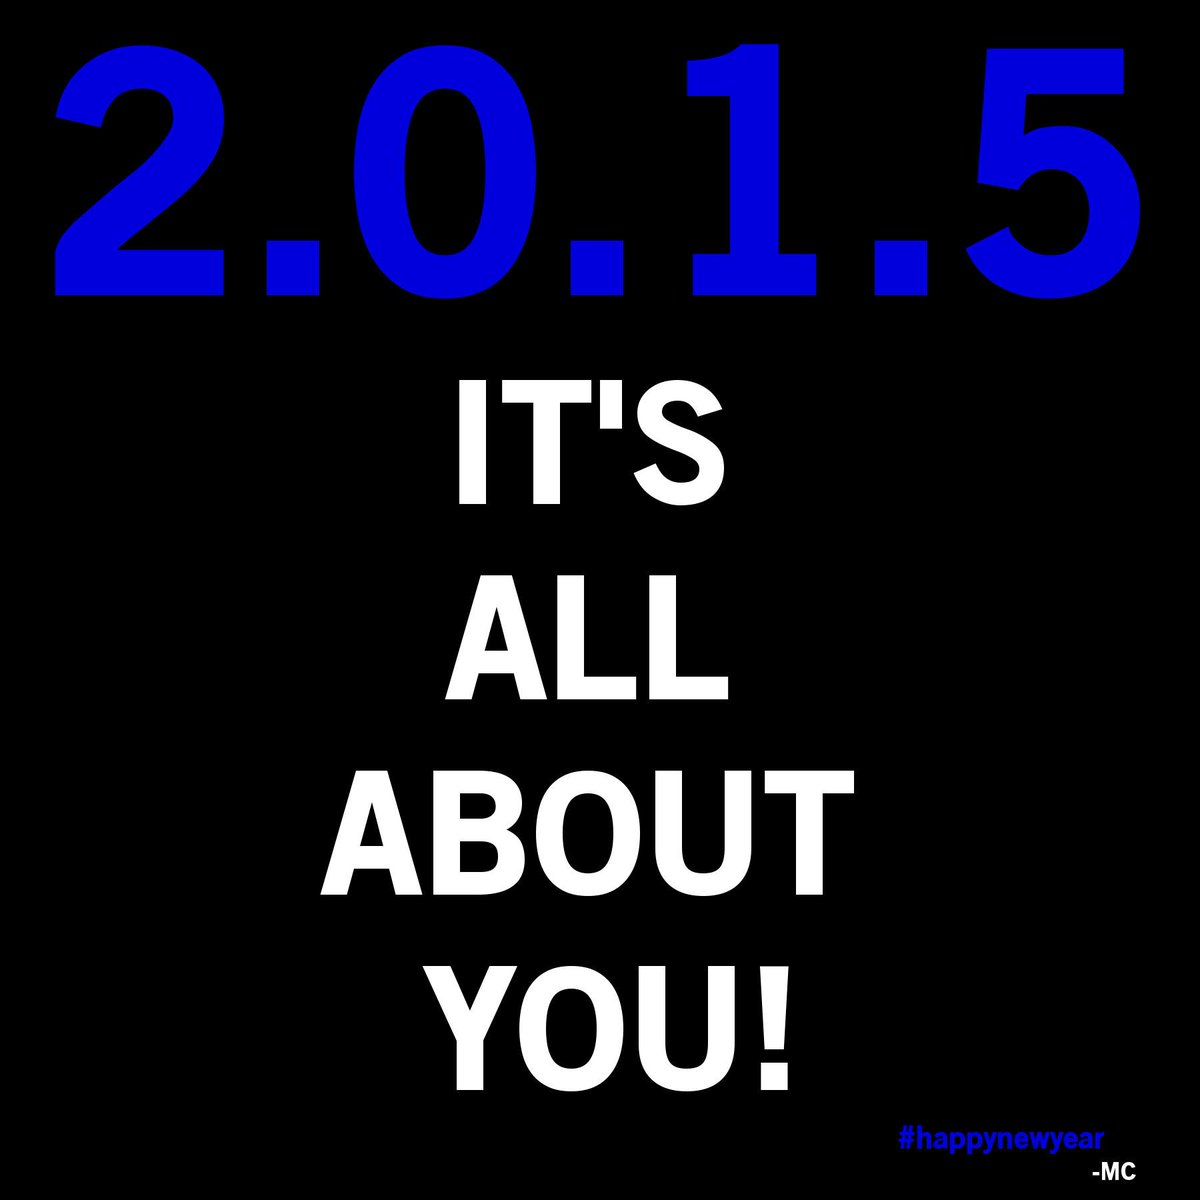 You're Gonna Make It and Take It. 2014 - WE OUT! 2015 - LET'S DO THIS! What's Good, Everybody?! #2015 #HappyNewYear http://t.co/kIIYic9oXS